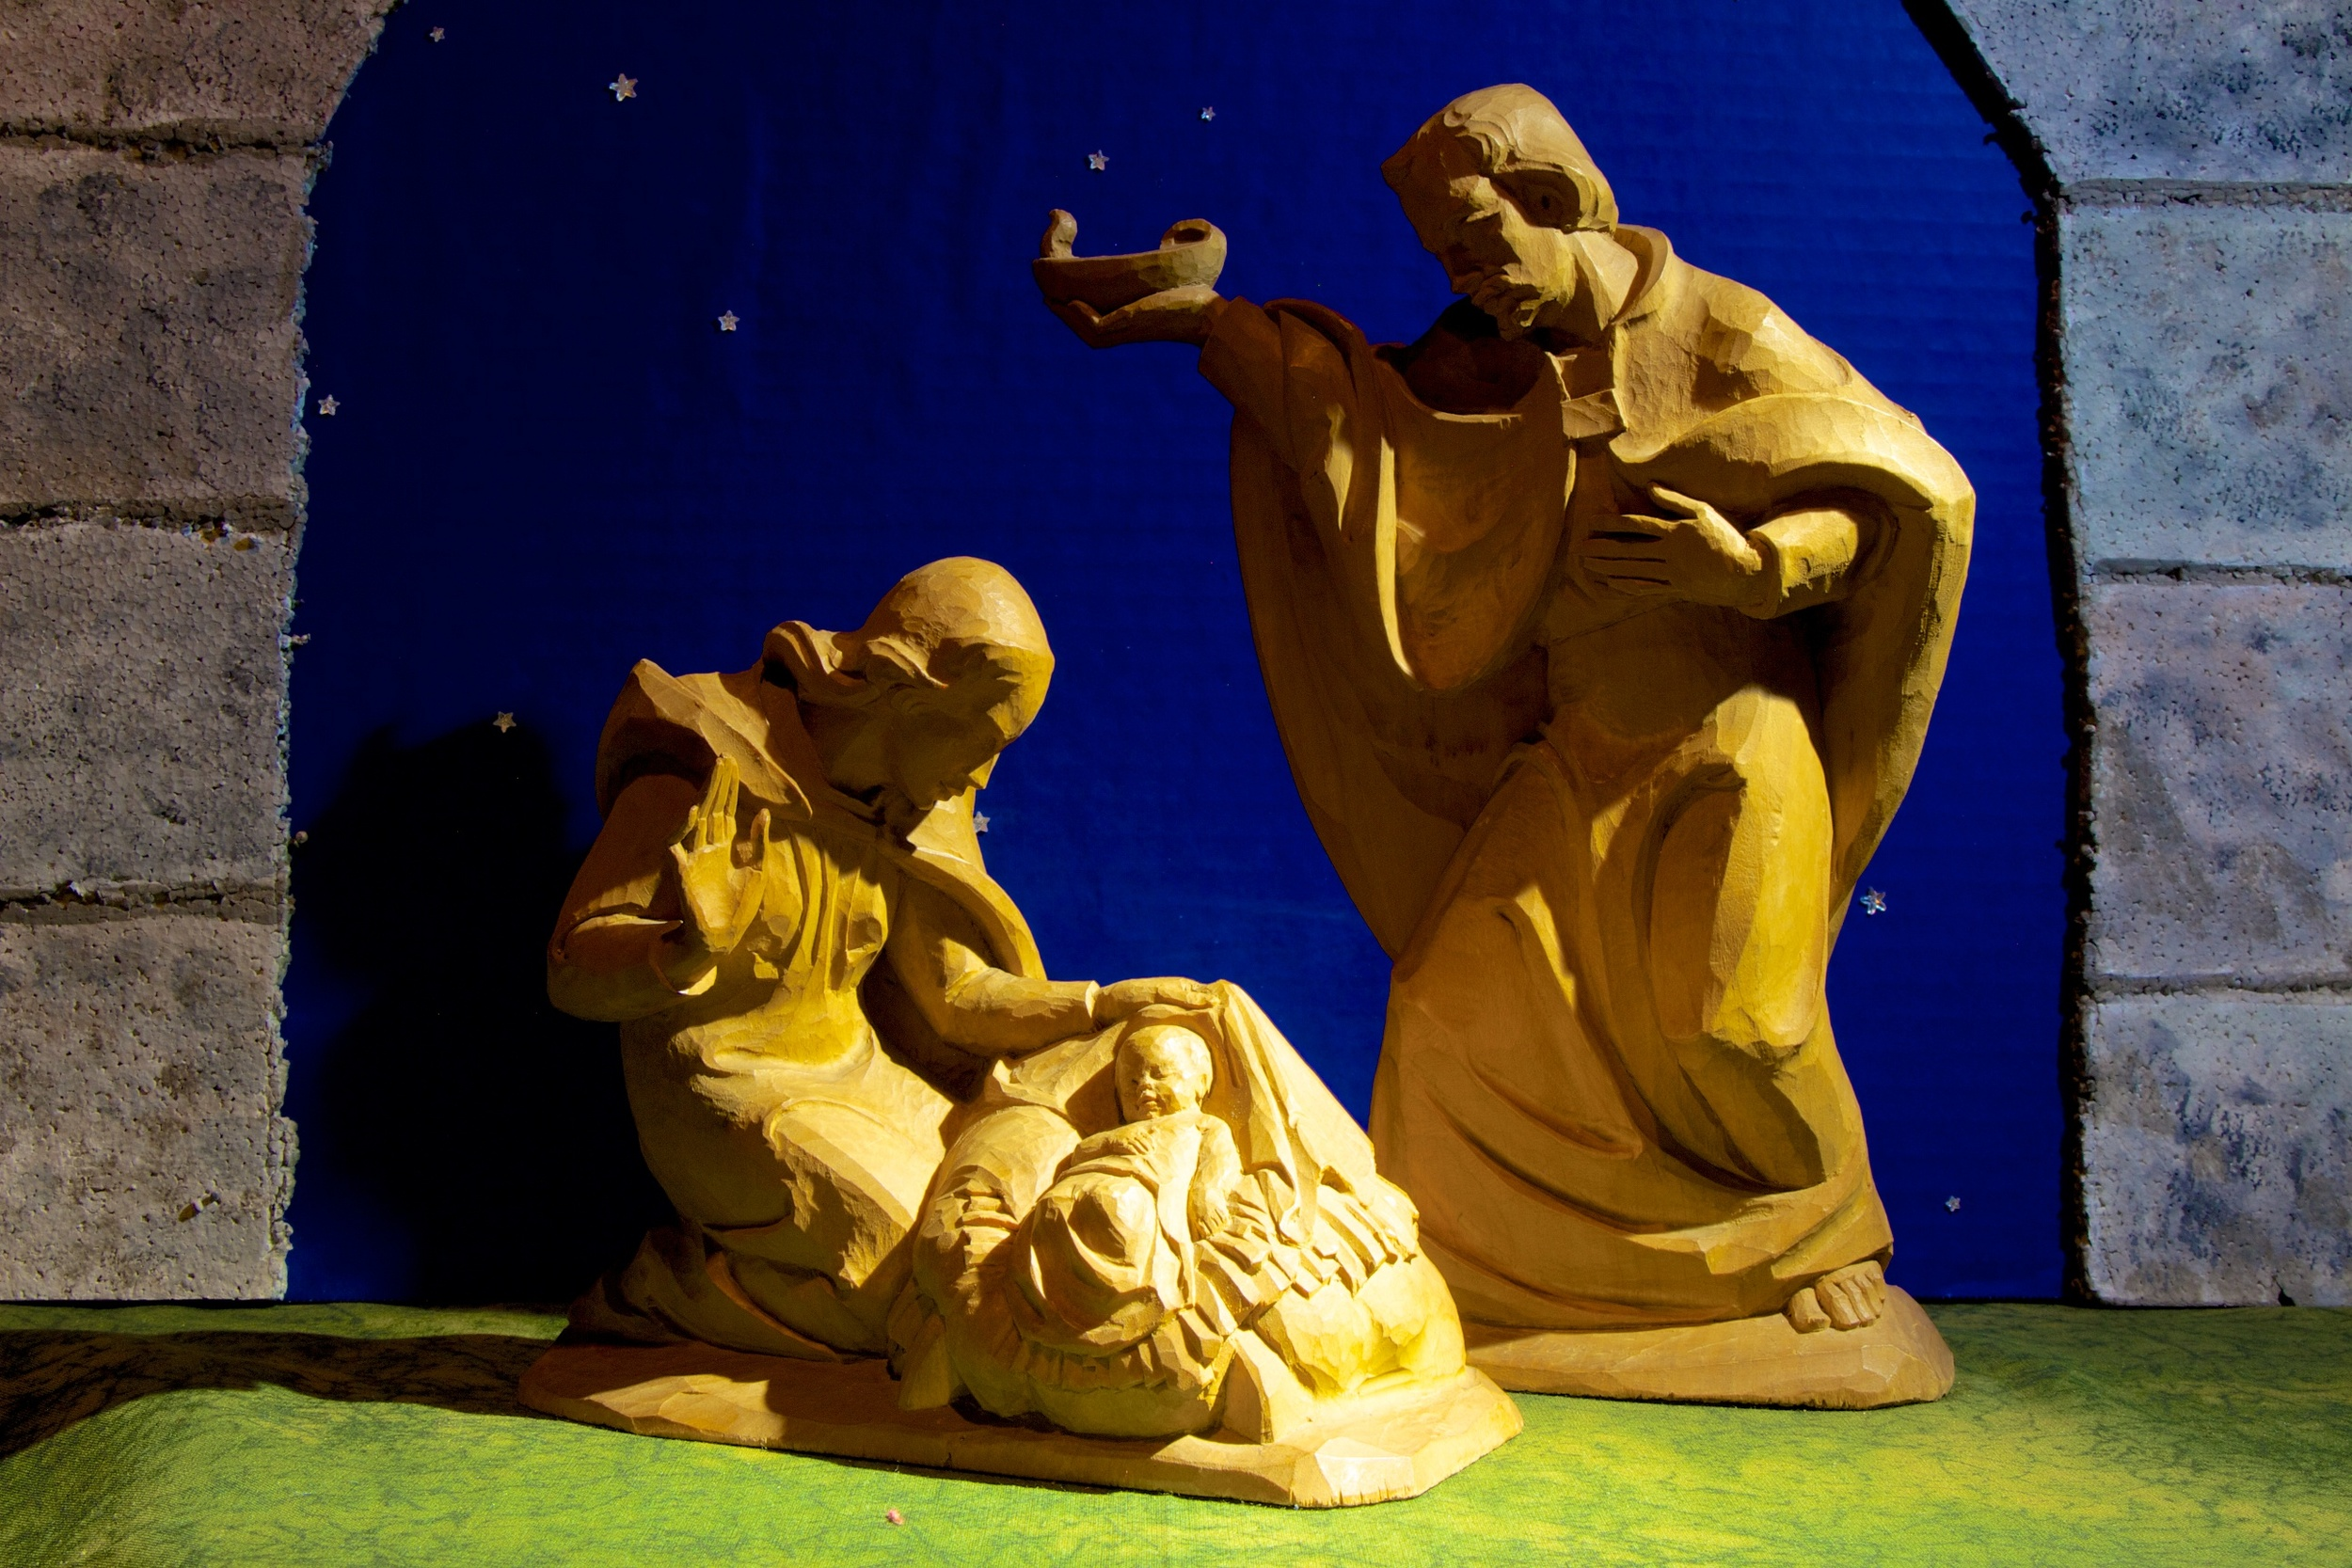 "Figure 2: This Holy Family was carved by Sepp Kals, an academically trained sculptor from Kirchberg in Tirol, Austria. Kals also designed and carved sculptures for several church altars. These Nativity figures were given as Christmas presents by Arthur Compton and his wife to each other. The base of Joseph is inscribed, ""to Arthur Compton from Betty Xmas 1953,"" and the base of Mary is inscribed, ""to Betty Compton from Arthur Xmas 1953."" Arthur was the winner of the Nobel Prize for Physics in 1927. He appeared on the cover of  Time  magazine, and was a key figure in the Manhattan Project."